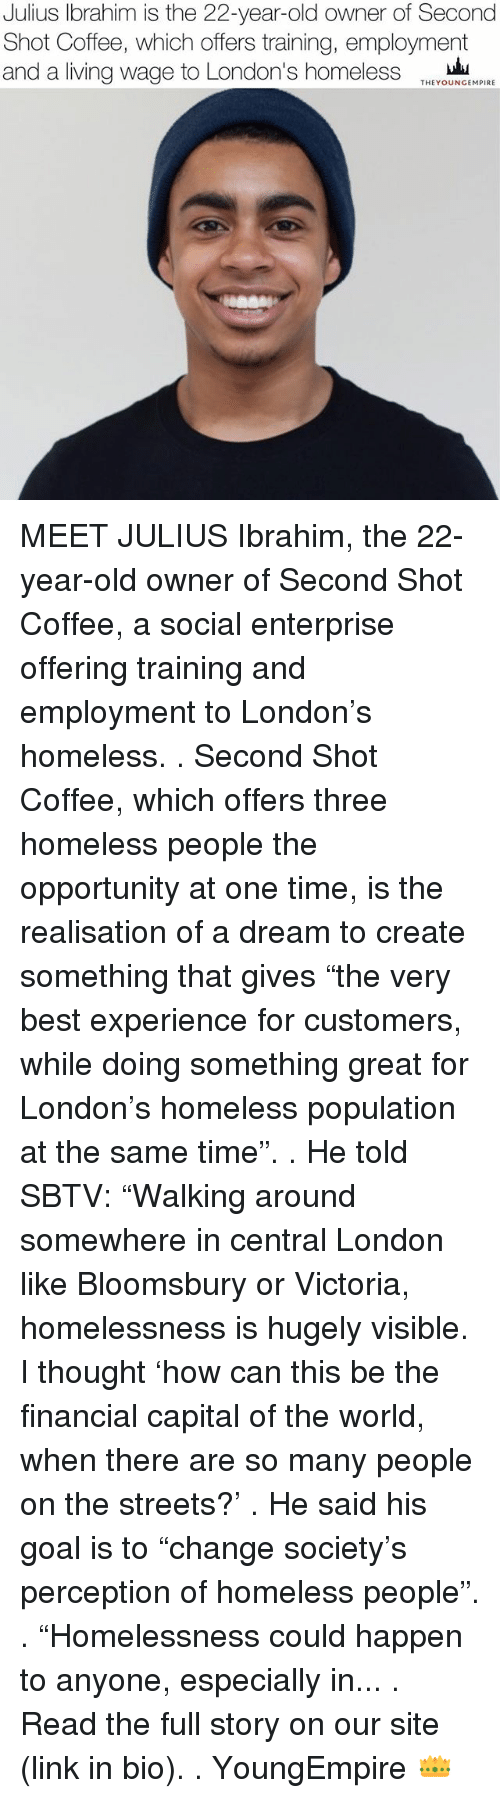 """Enterprise: Julius Ibrahim is the 22-year-old owner of Second  Shot Coffee, which offers training, employment  and a living wage to London's homeless  THEYOUNGEMPIRE MEET JULIUS Ibrahim, the 22-year-old owner of Second Shot Coffee, a social enterprise offering training and employment to London's homeless. . Second Shot Coffee, which offers three homeless people the opportunity at one time, is the realisation of a dream to create something that gives """"the very best experience for customers, while doing something great for London's homeless population at the same time"""". . He told SBTV: """"Walking around somewhere in central London like Bloomsbury or Victoria, homelessness is hugely visible. I thought 'how can this be the financial capital of the world, when there are so many people on the streets?' . He said his goal is to """"change society's perception of homeless people"""". . """"Homelessness could happen to anyone, especially in... . Read the full story on our site (link in bio). . YoungEmpire 👑"""